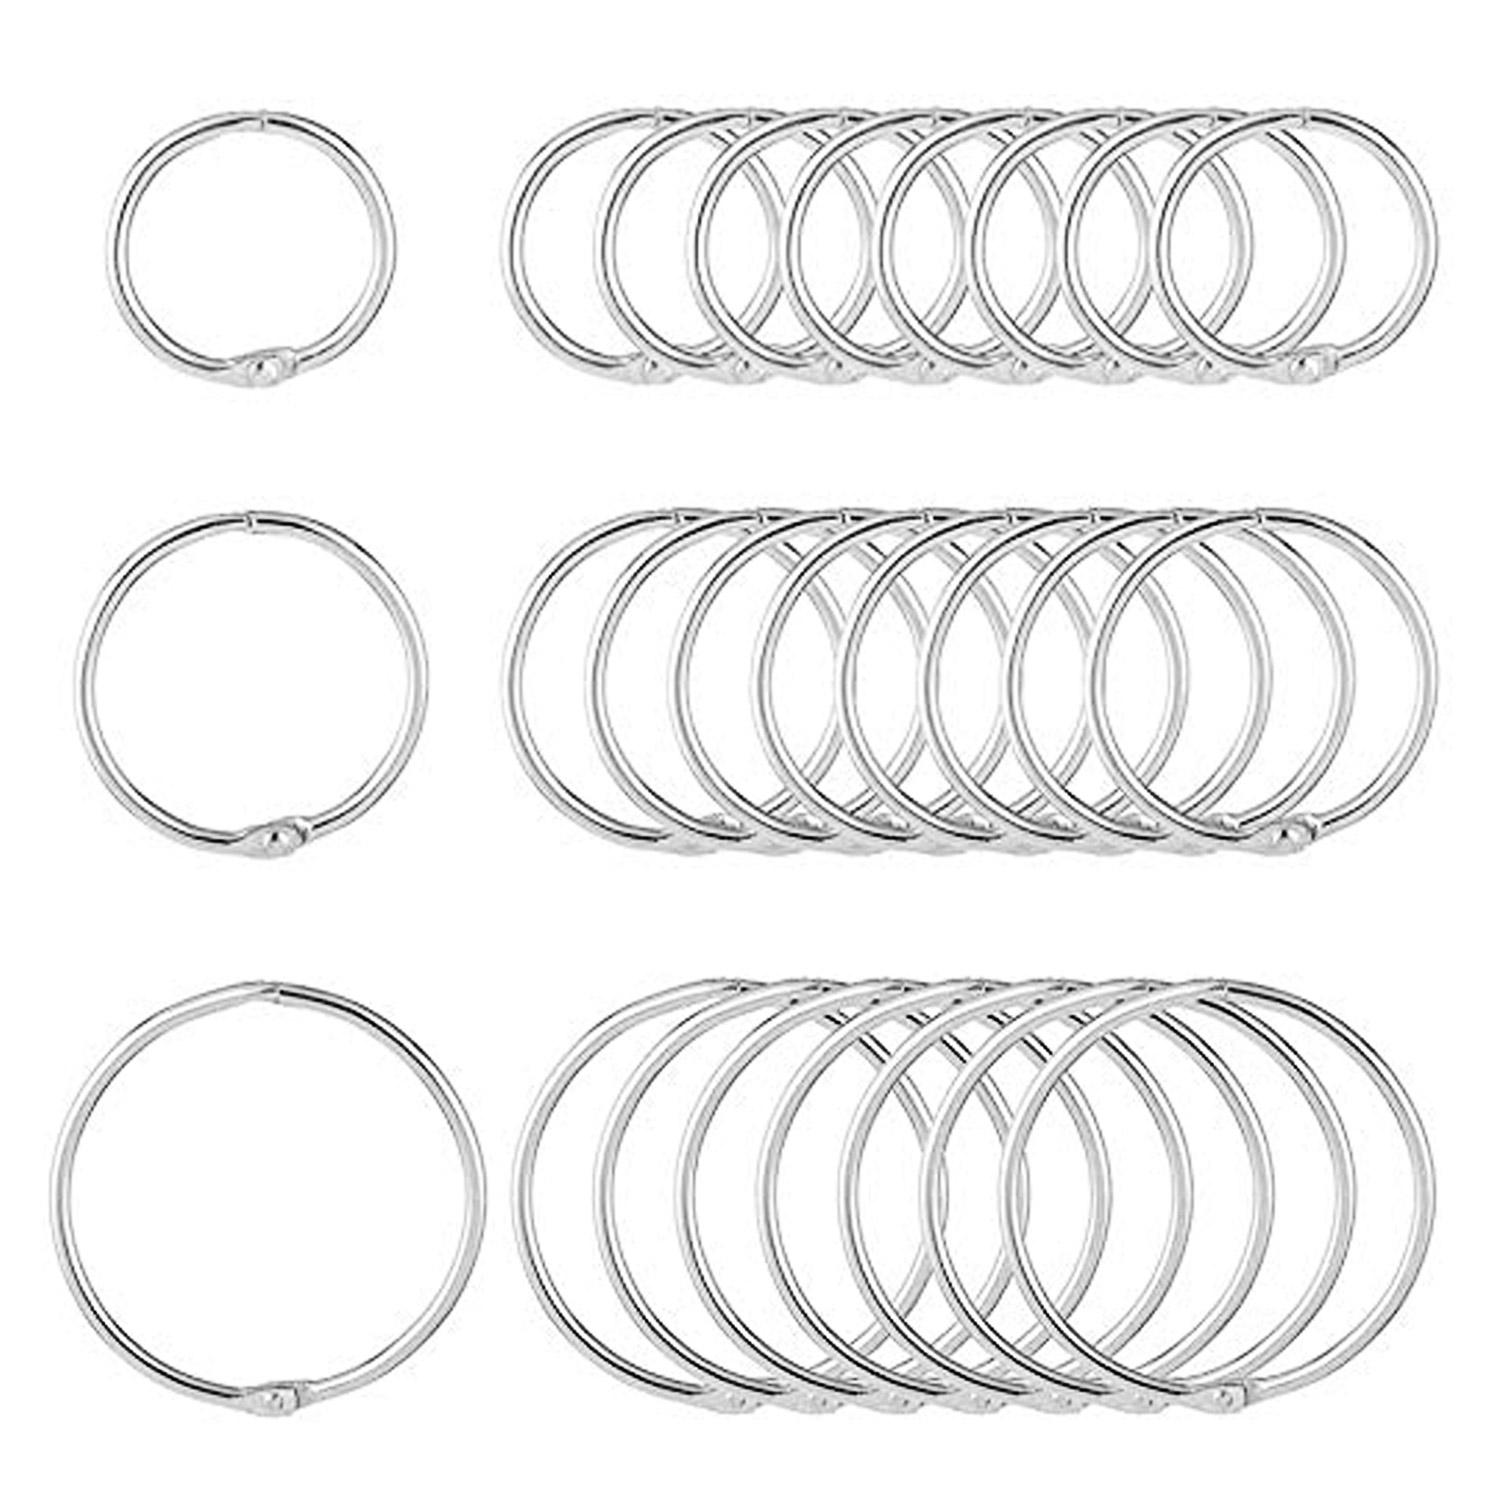 150PCS Assorted Sizes Metal Loose Book Rings Keychain for Memo Diary Scrapbooks Photo Albums Class Notes Documents 20/30/40mm